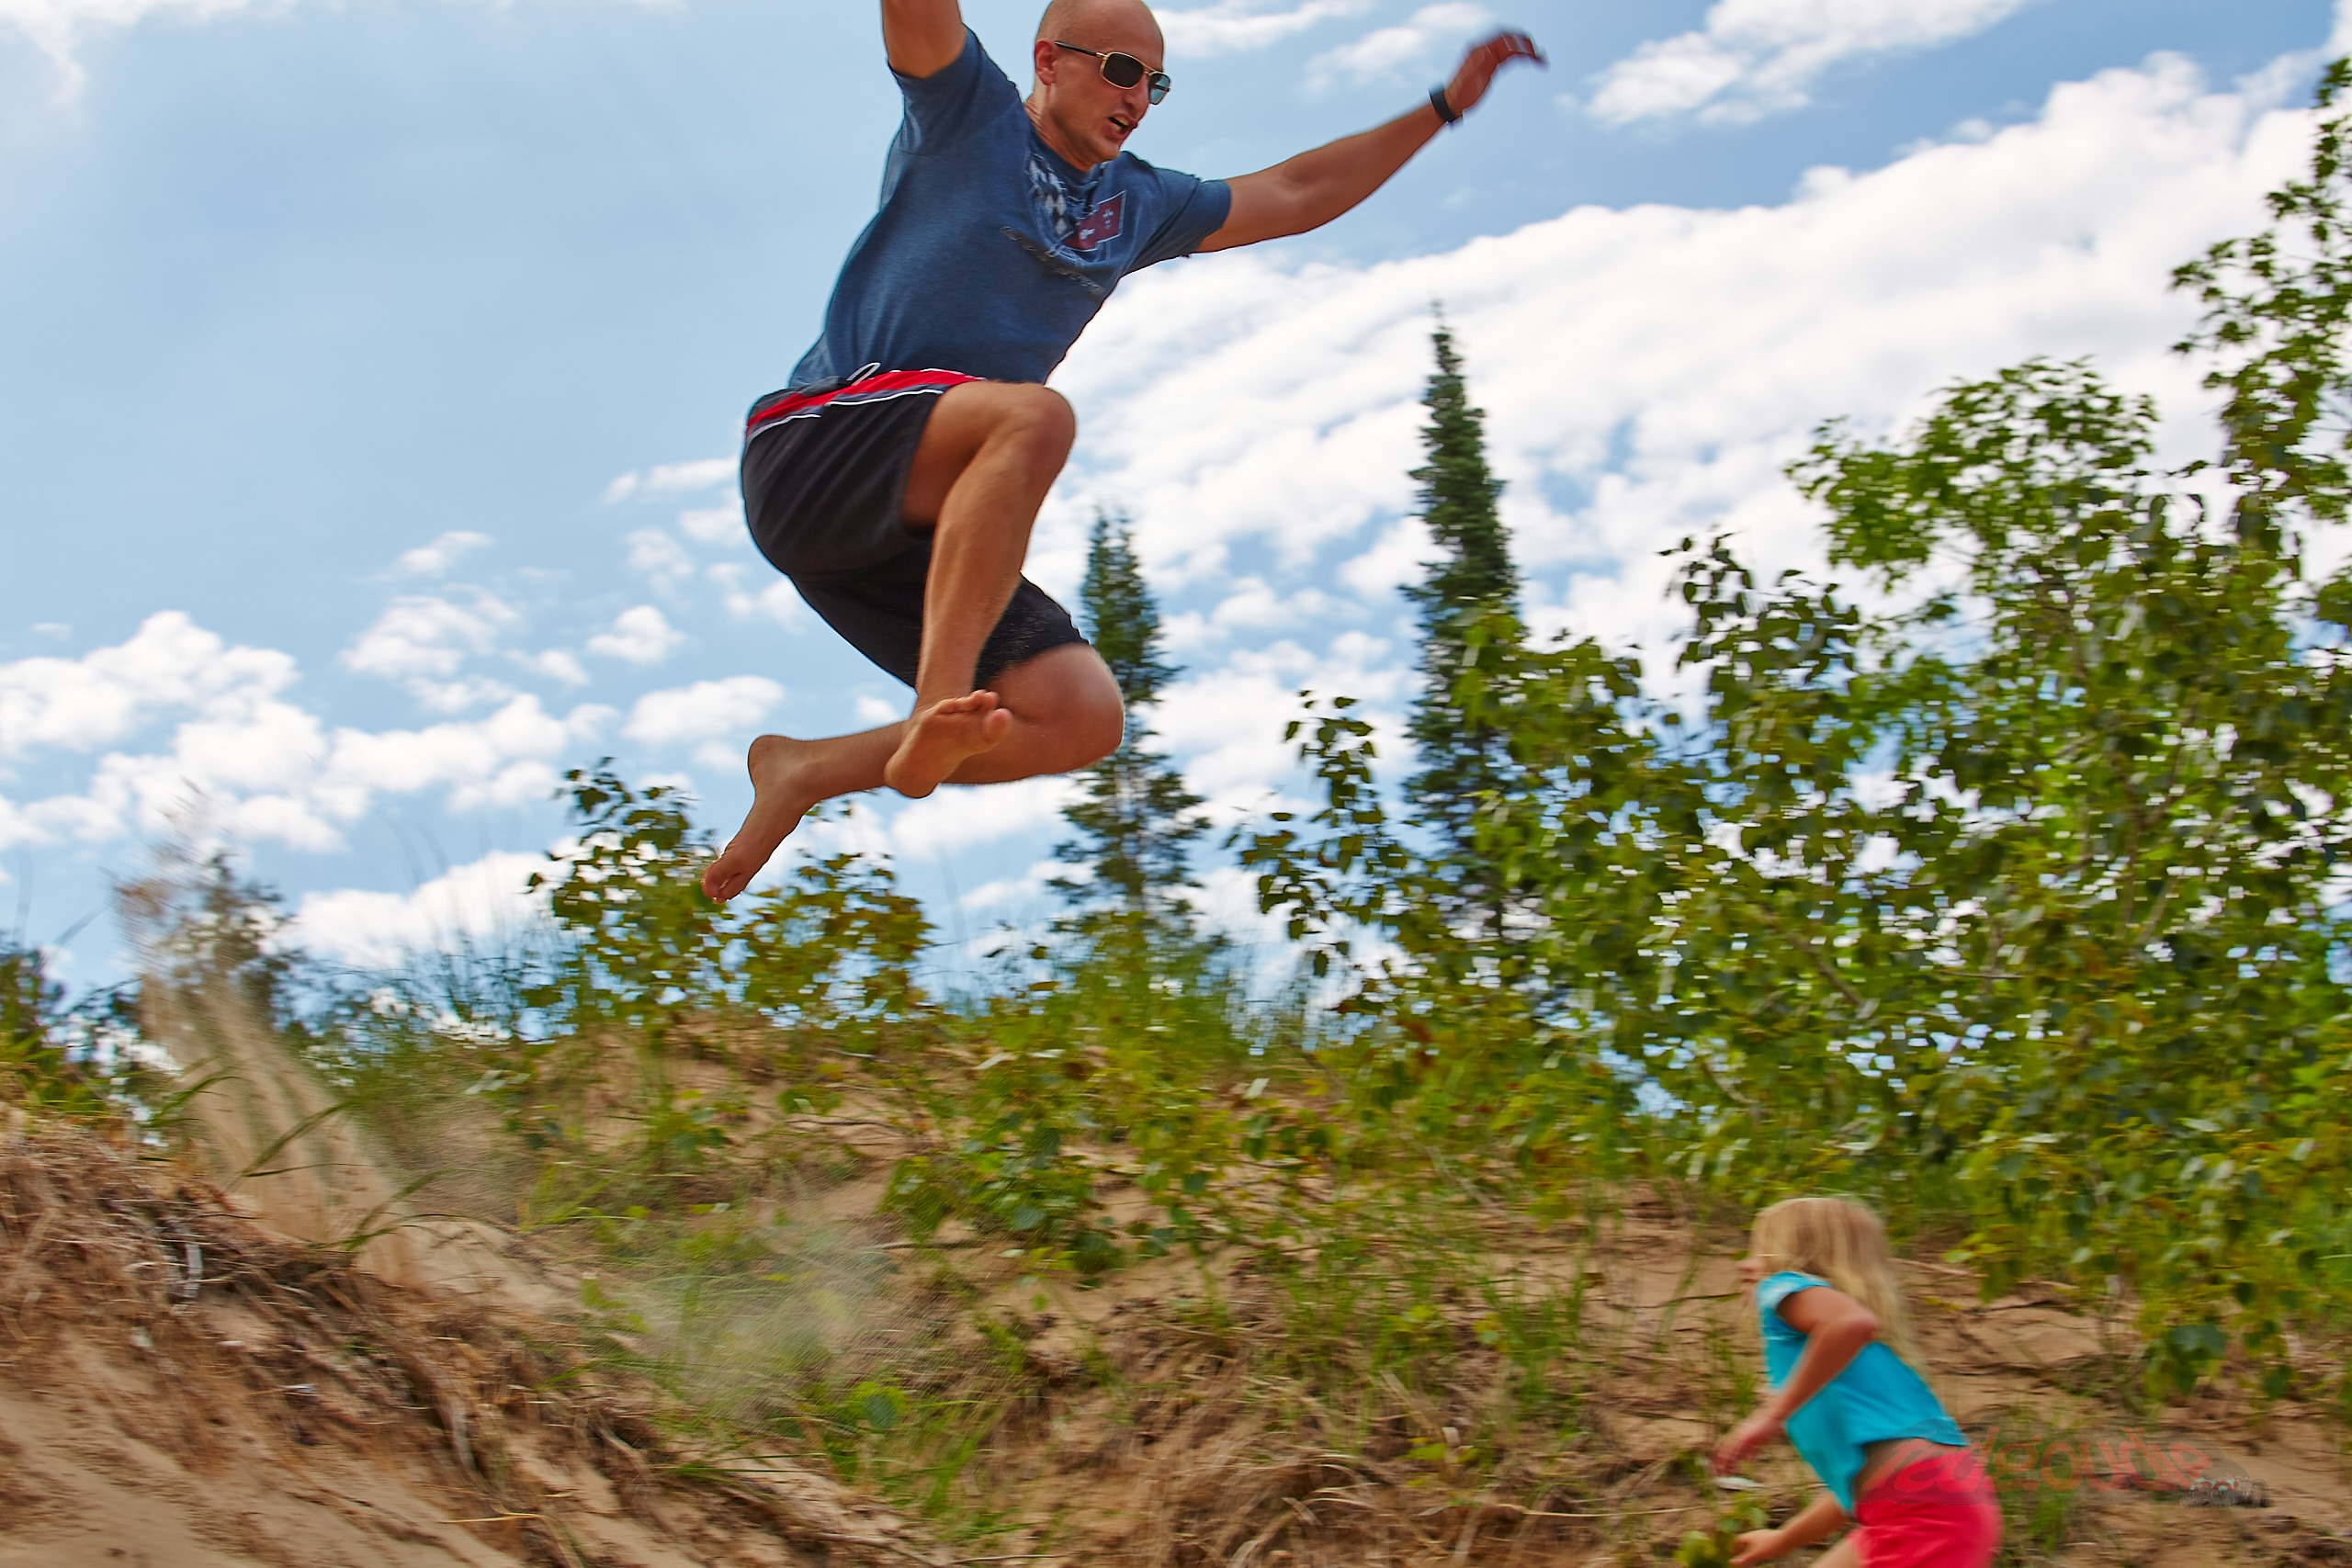 Watch out, small girl, for I am stomp mountain.